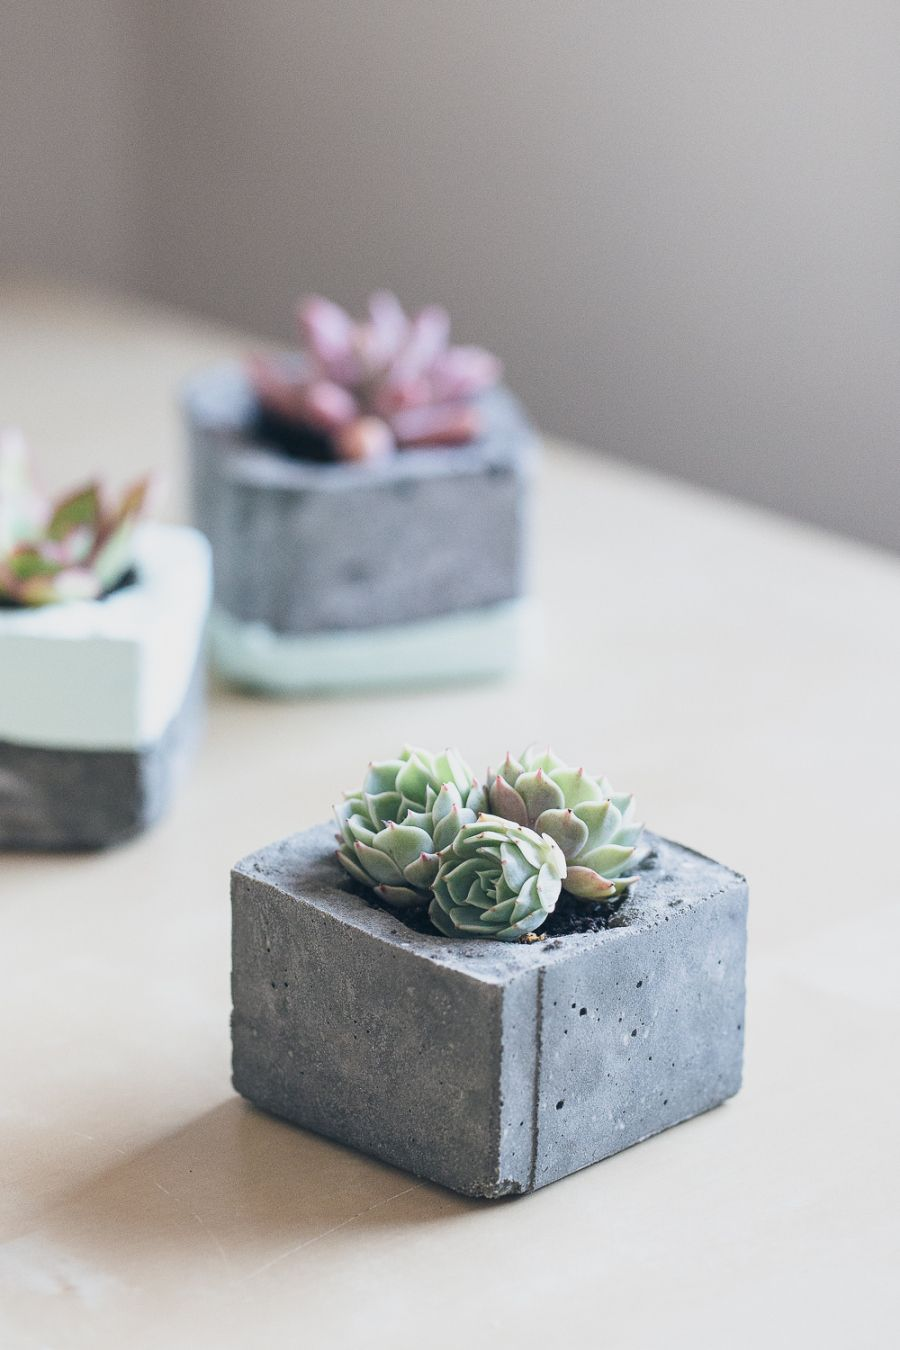 easy weekend project: milk carton concrete planters diy | beton